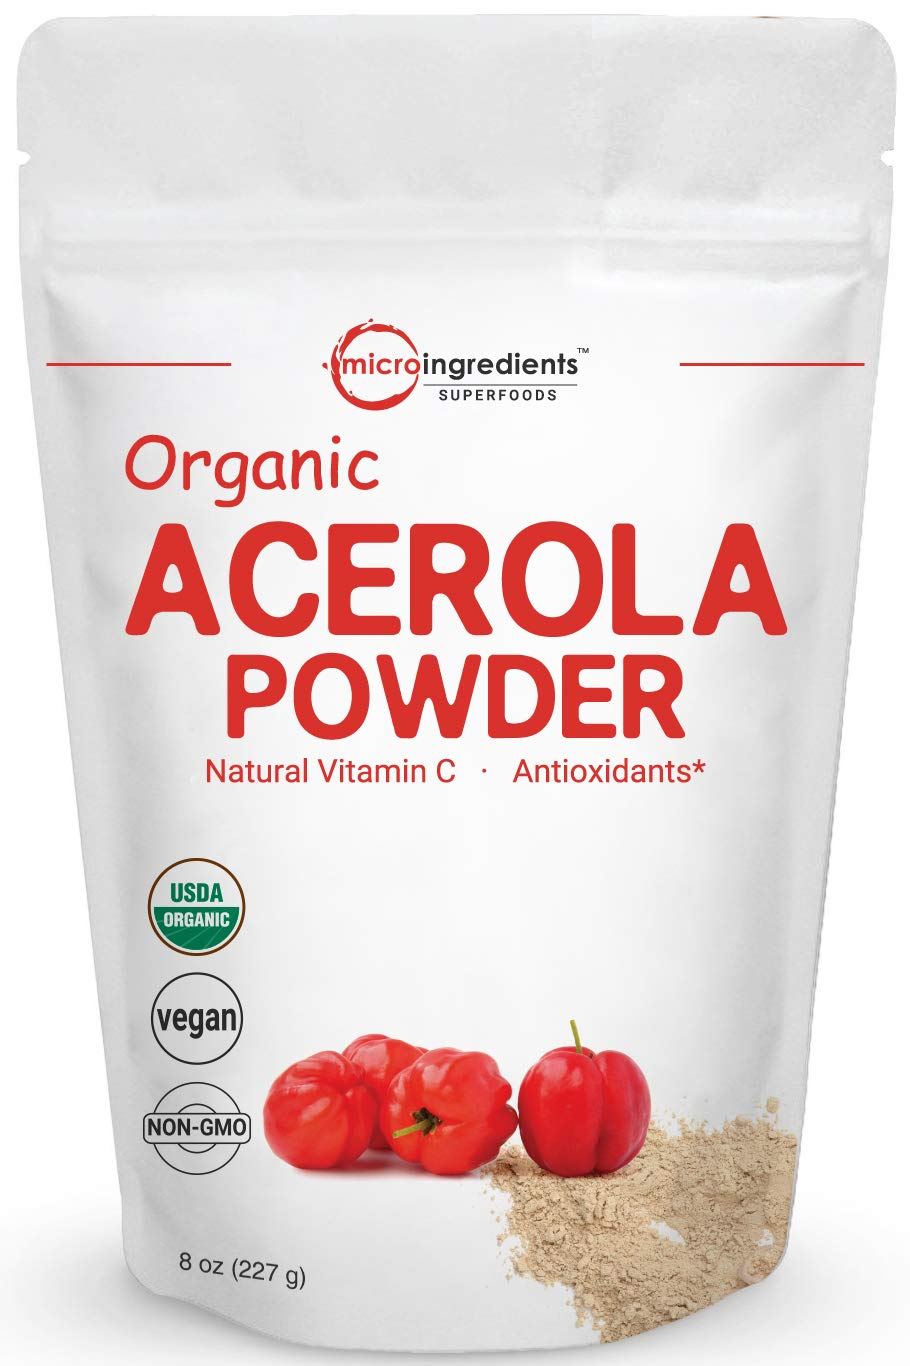 Pure Acerola Cherry Powder Organic, Natural and Organic Vitamin C Powder, 8 Ounce, Best Superfoods for Beverage, Smoothie and Drinks, No GMOs and Vegan Friendly by Micro Ingredients